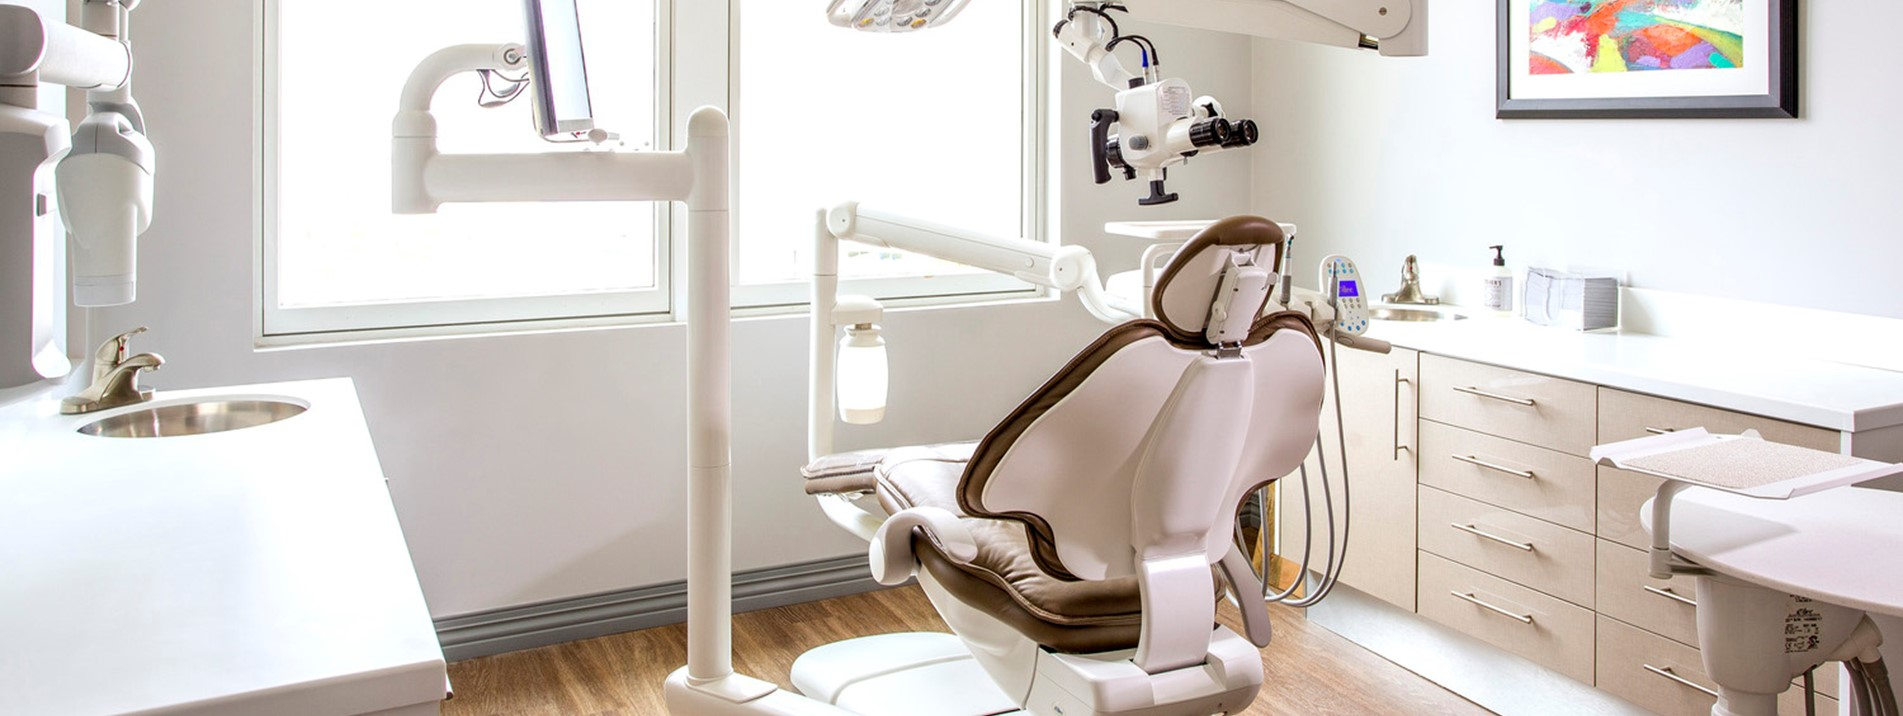 Dental equipment for lease or rent